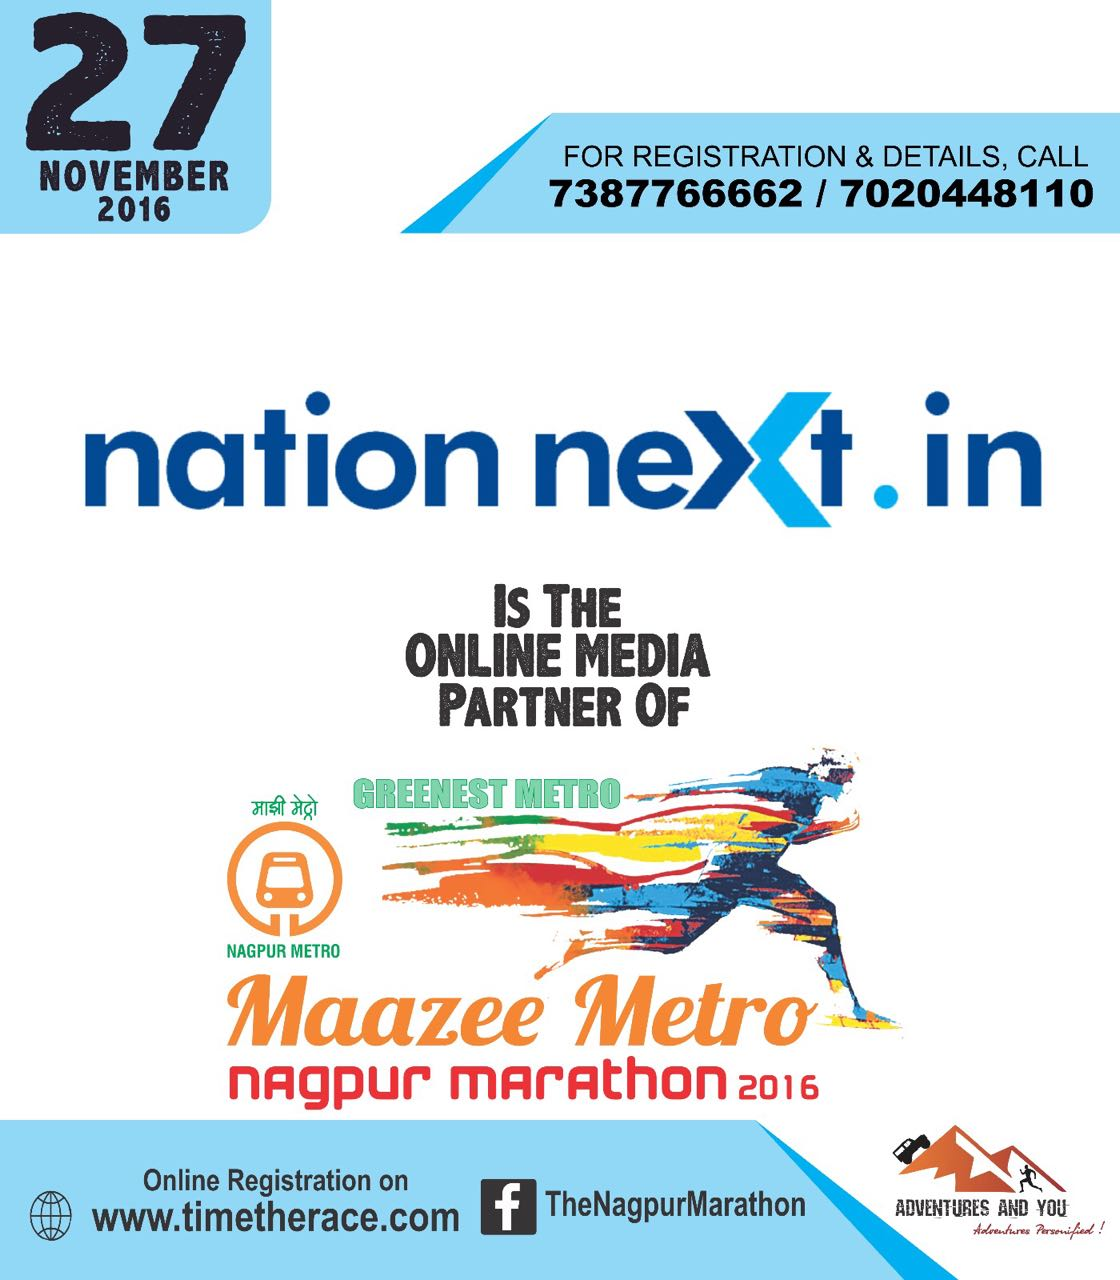 The second Mazee Metro Nagpur Marathon 2016 is going to be held on November 27. The Flying Sikh Milkha Singh will be the chief guest at the marathon.